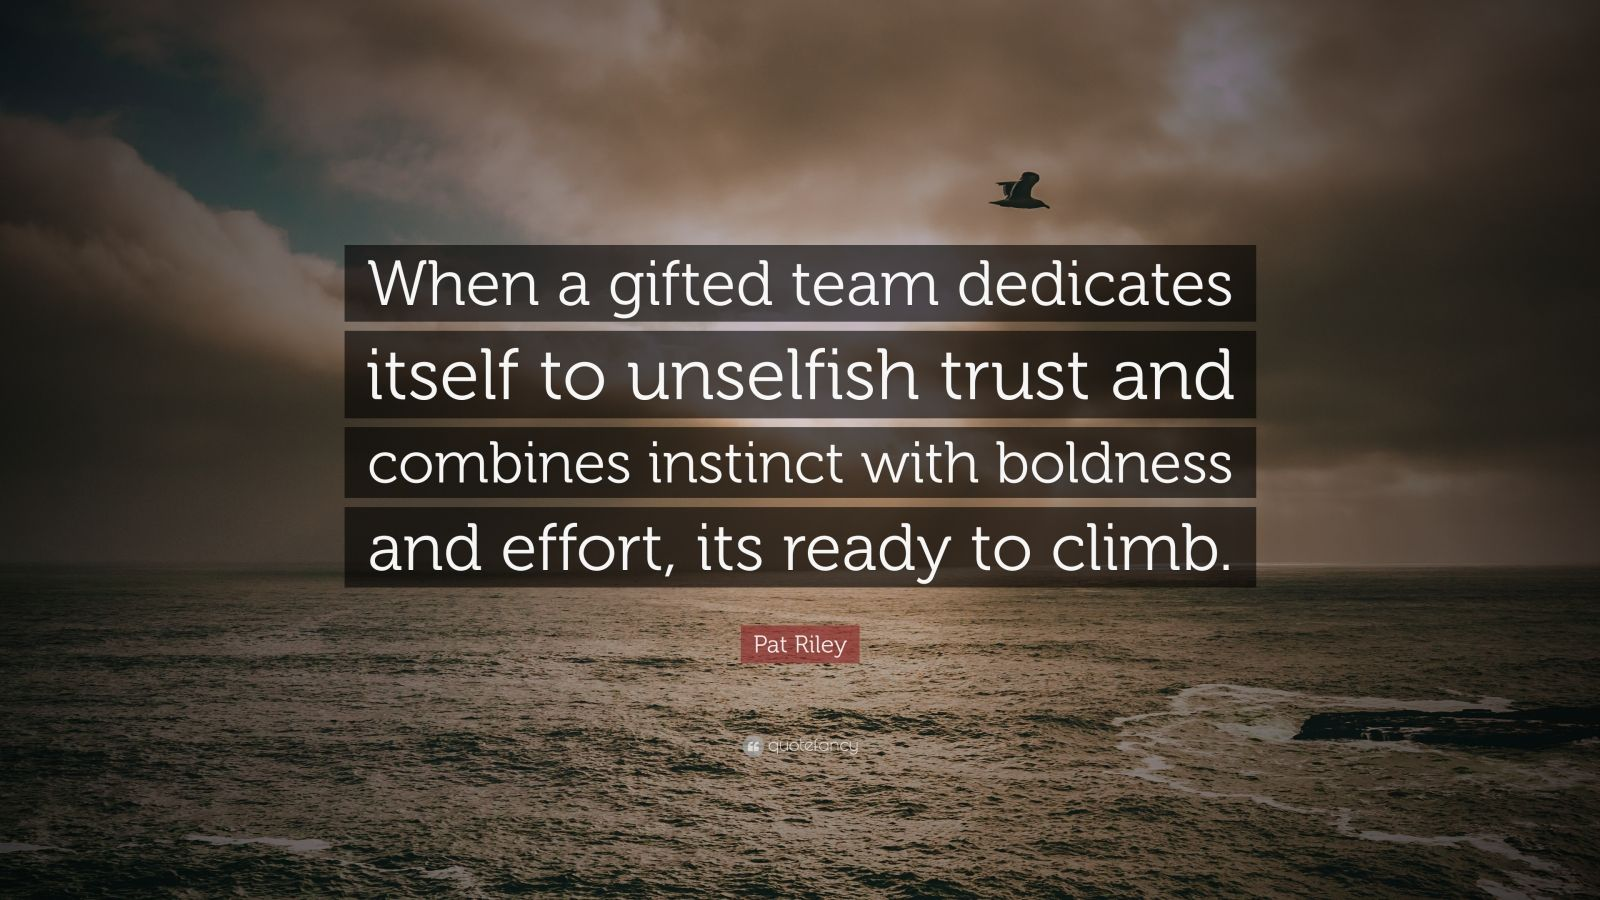 """Pat Riley Quote: """"When a gifted team dedicates itself to unselfish trust and combines instinct with boldness and effort, its ready to climb."""""""